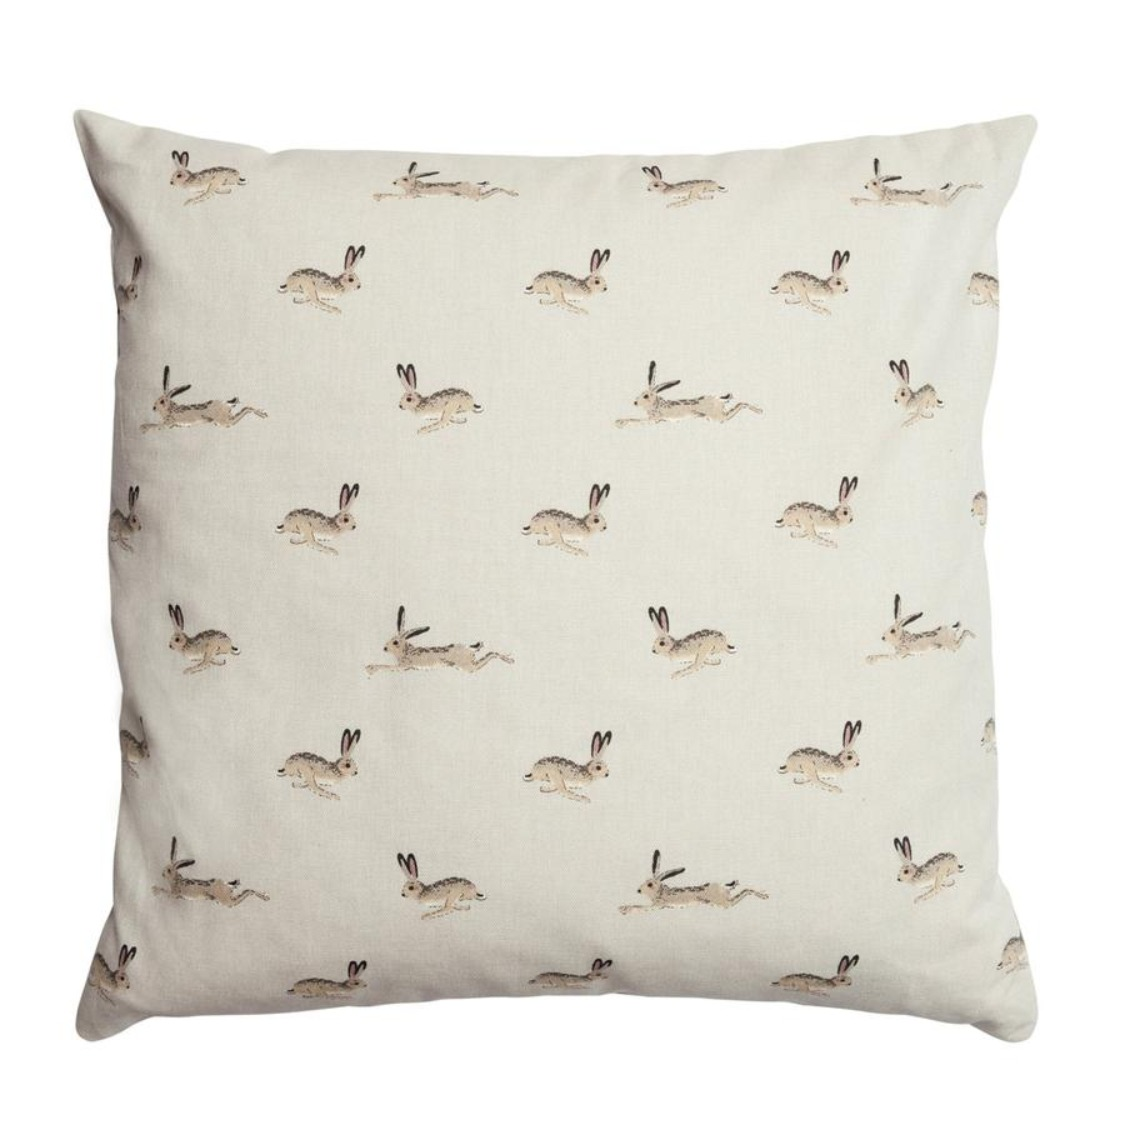 Sophie Allport Hare cushion